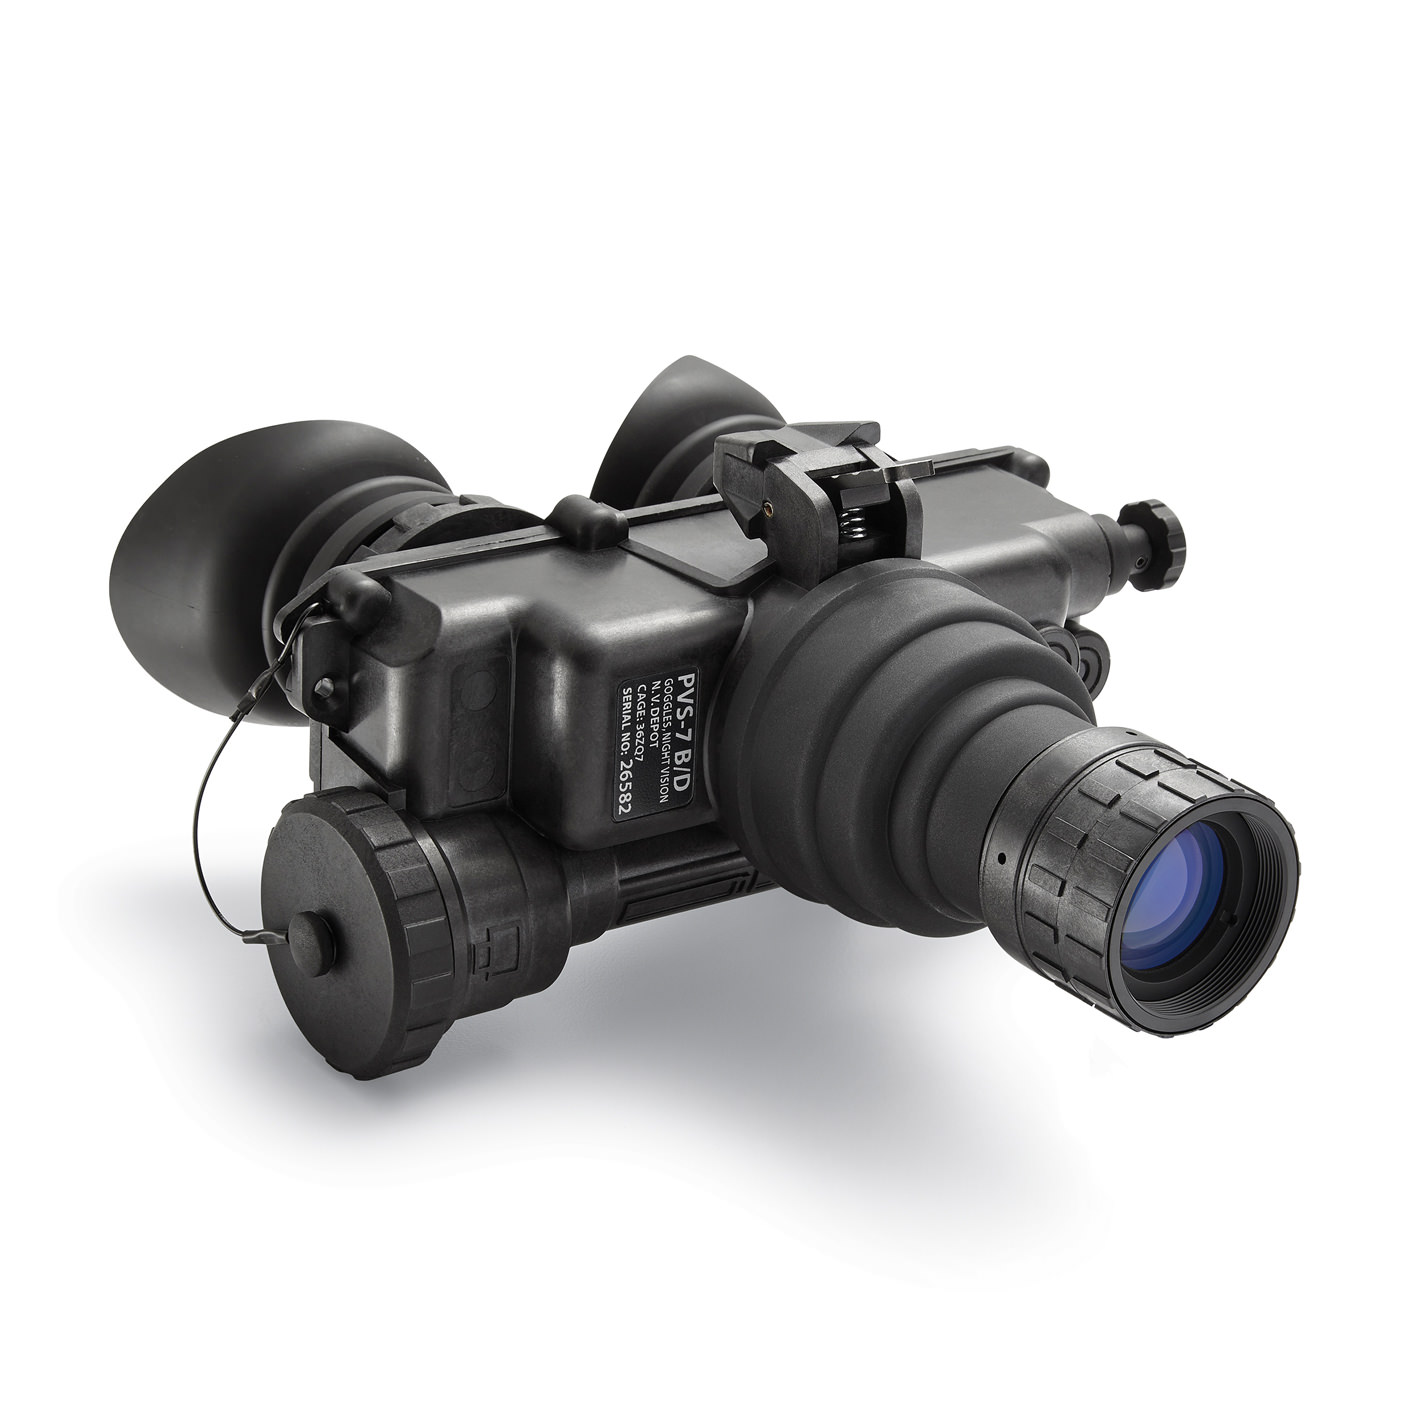 PVS-7 Night Vision Goggles